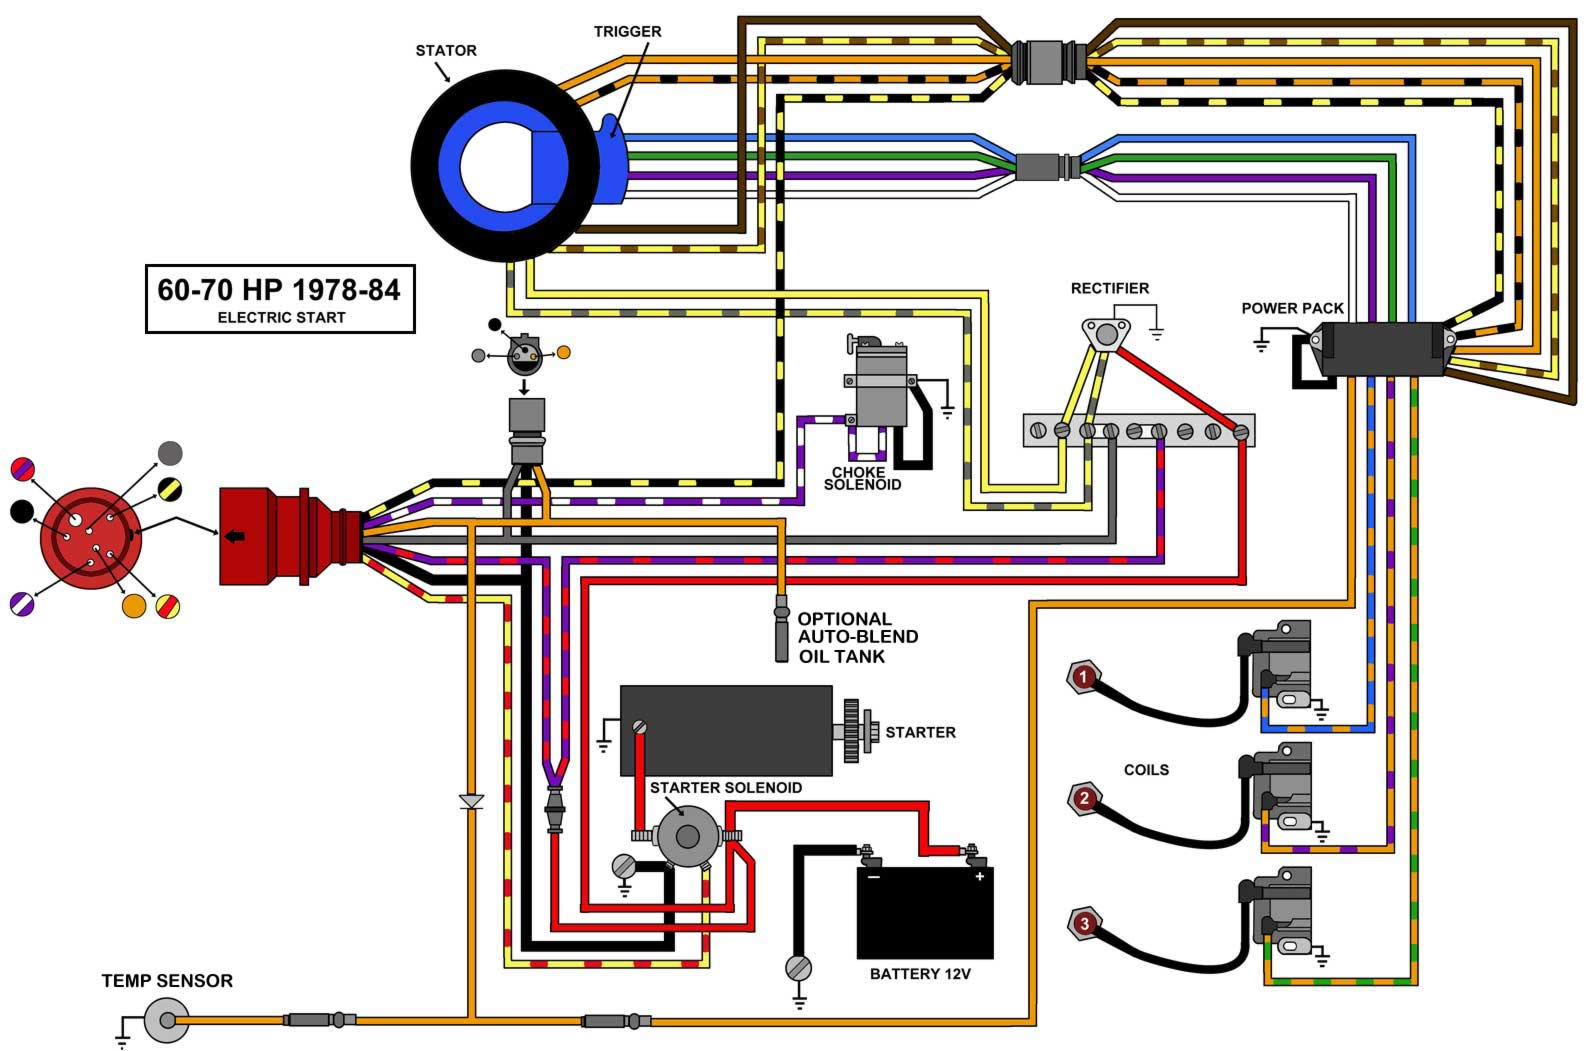 78 84_3 CYL_EL wiring tach from johnson controls page 1 iboats boating forums  at love-stories.co